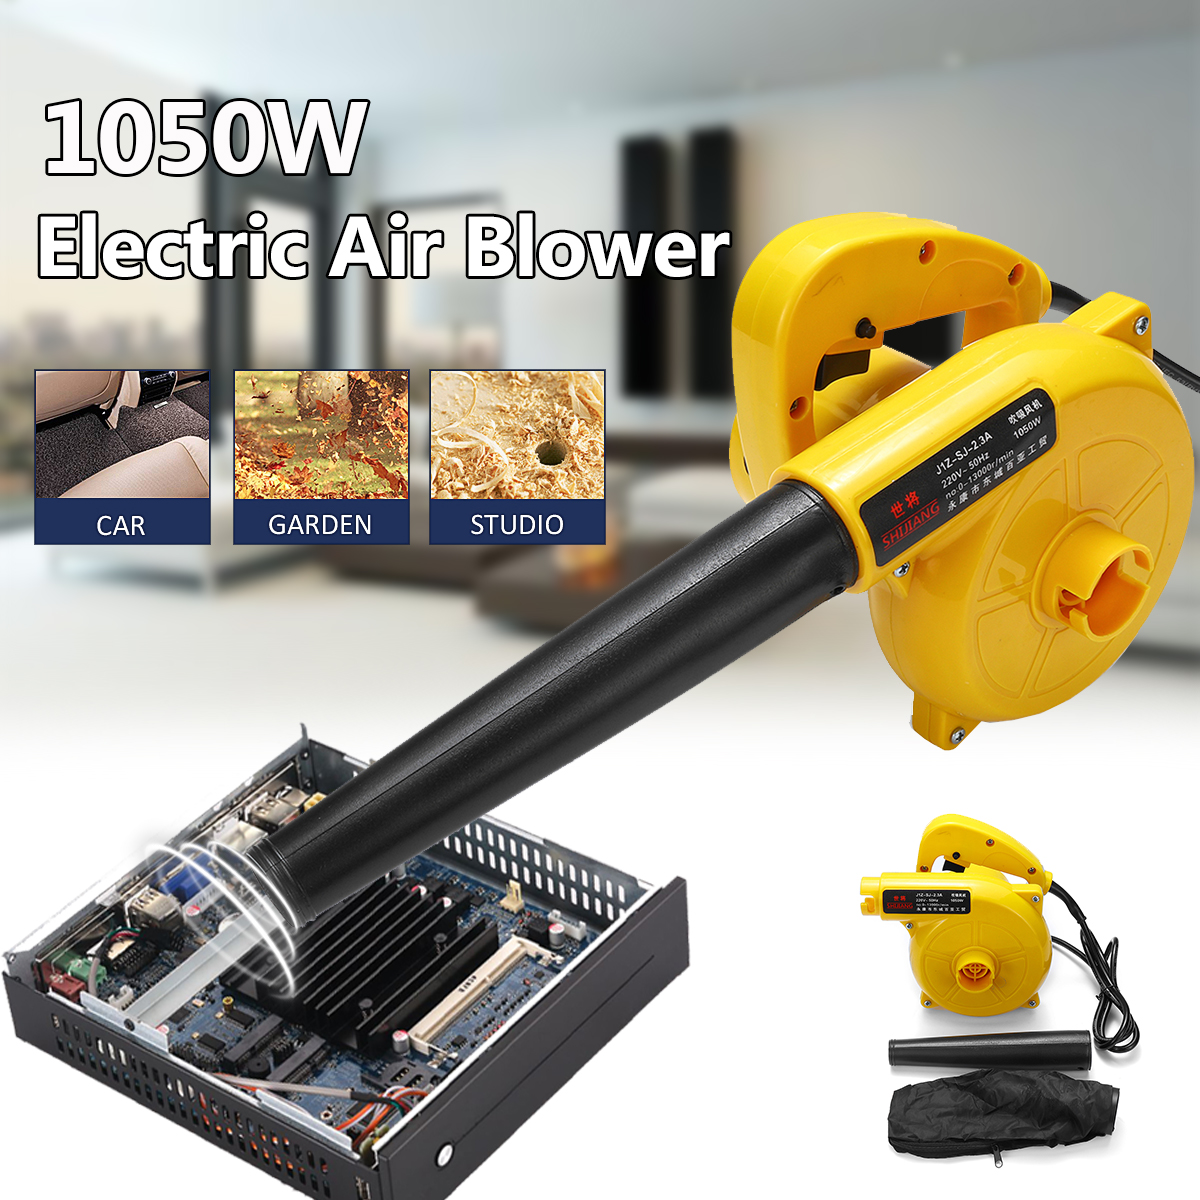 1050W Portable Electric Air Blower Handheld Dust Collector Fan Spray Vacuum Cleaner Car Garden Studio Leaf Blowing Remover